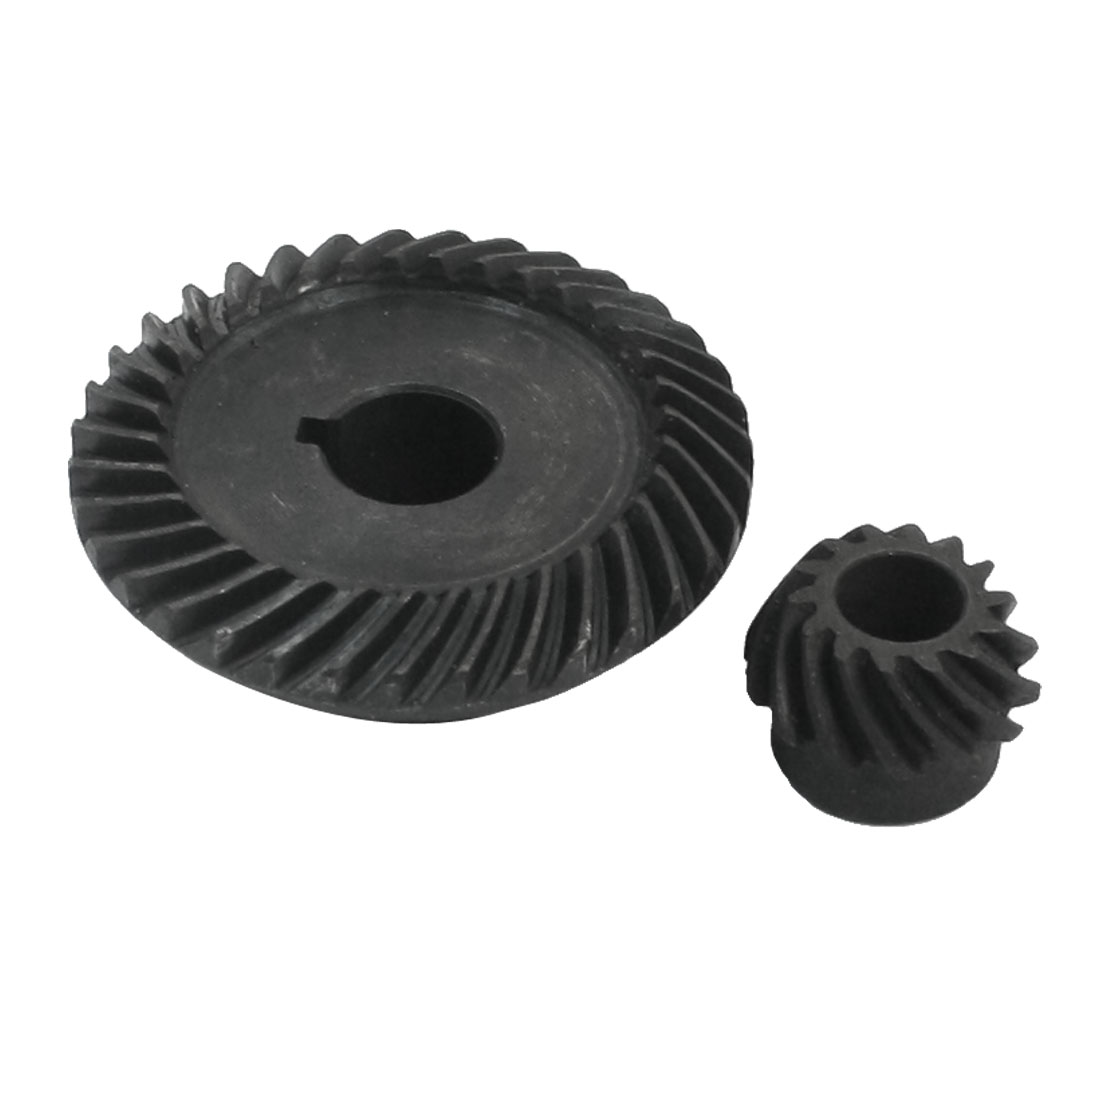 Electric Tool Parts Spiral Bevel Gear Set for Bosch GWS6-100 Angle Grinder